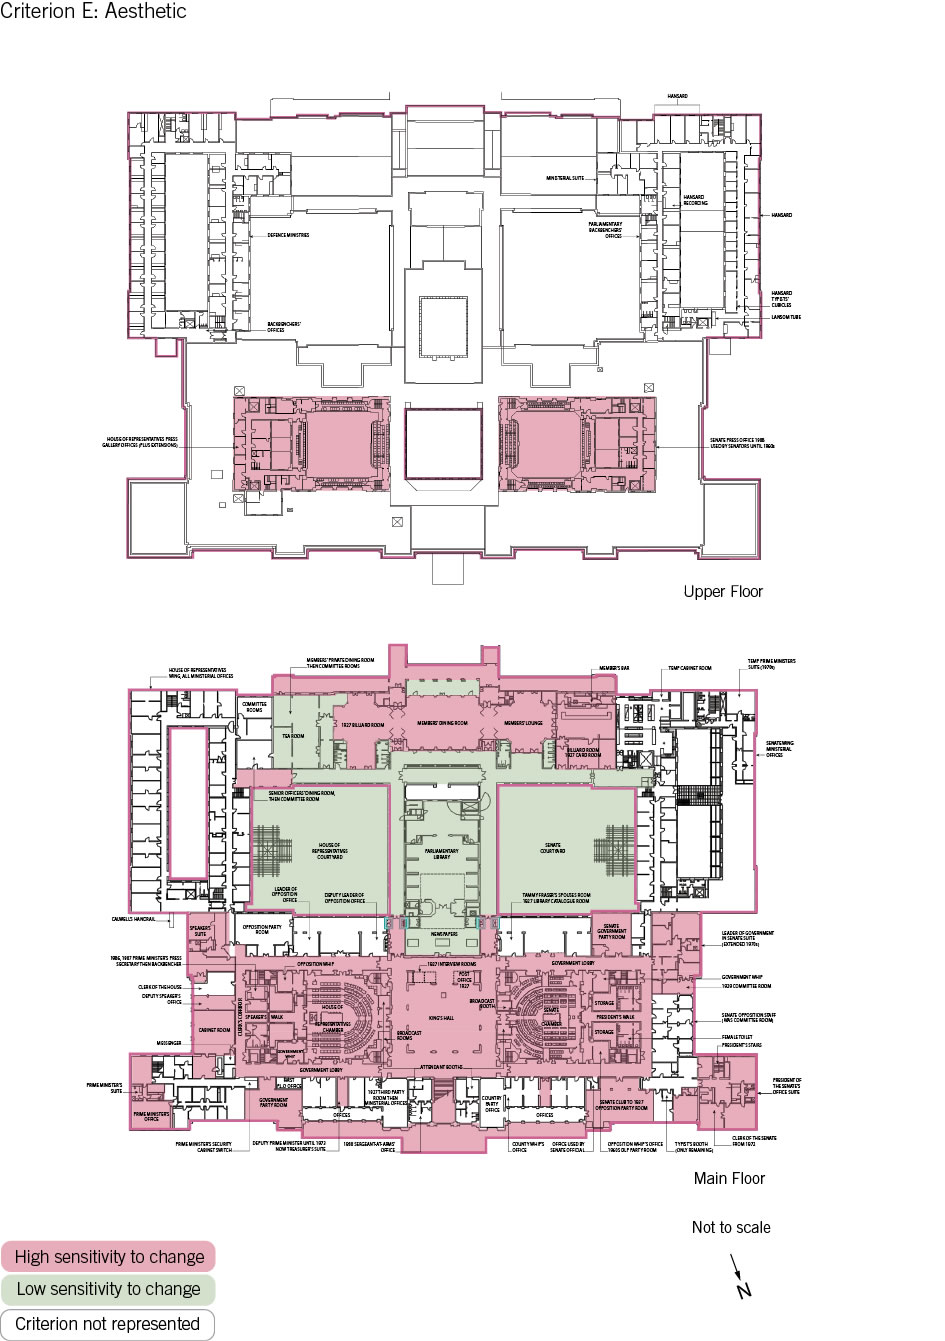 Old Parliament House upper and main floor plan showing the zones according to criterion E: aesthetic.